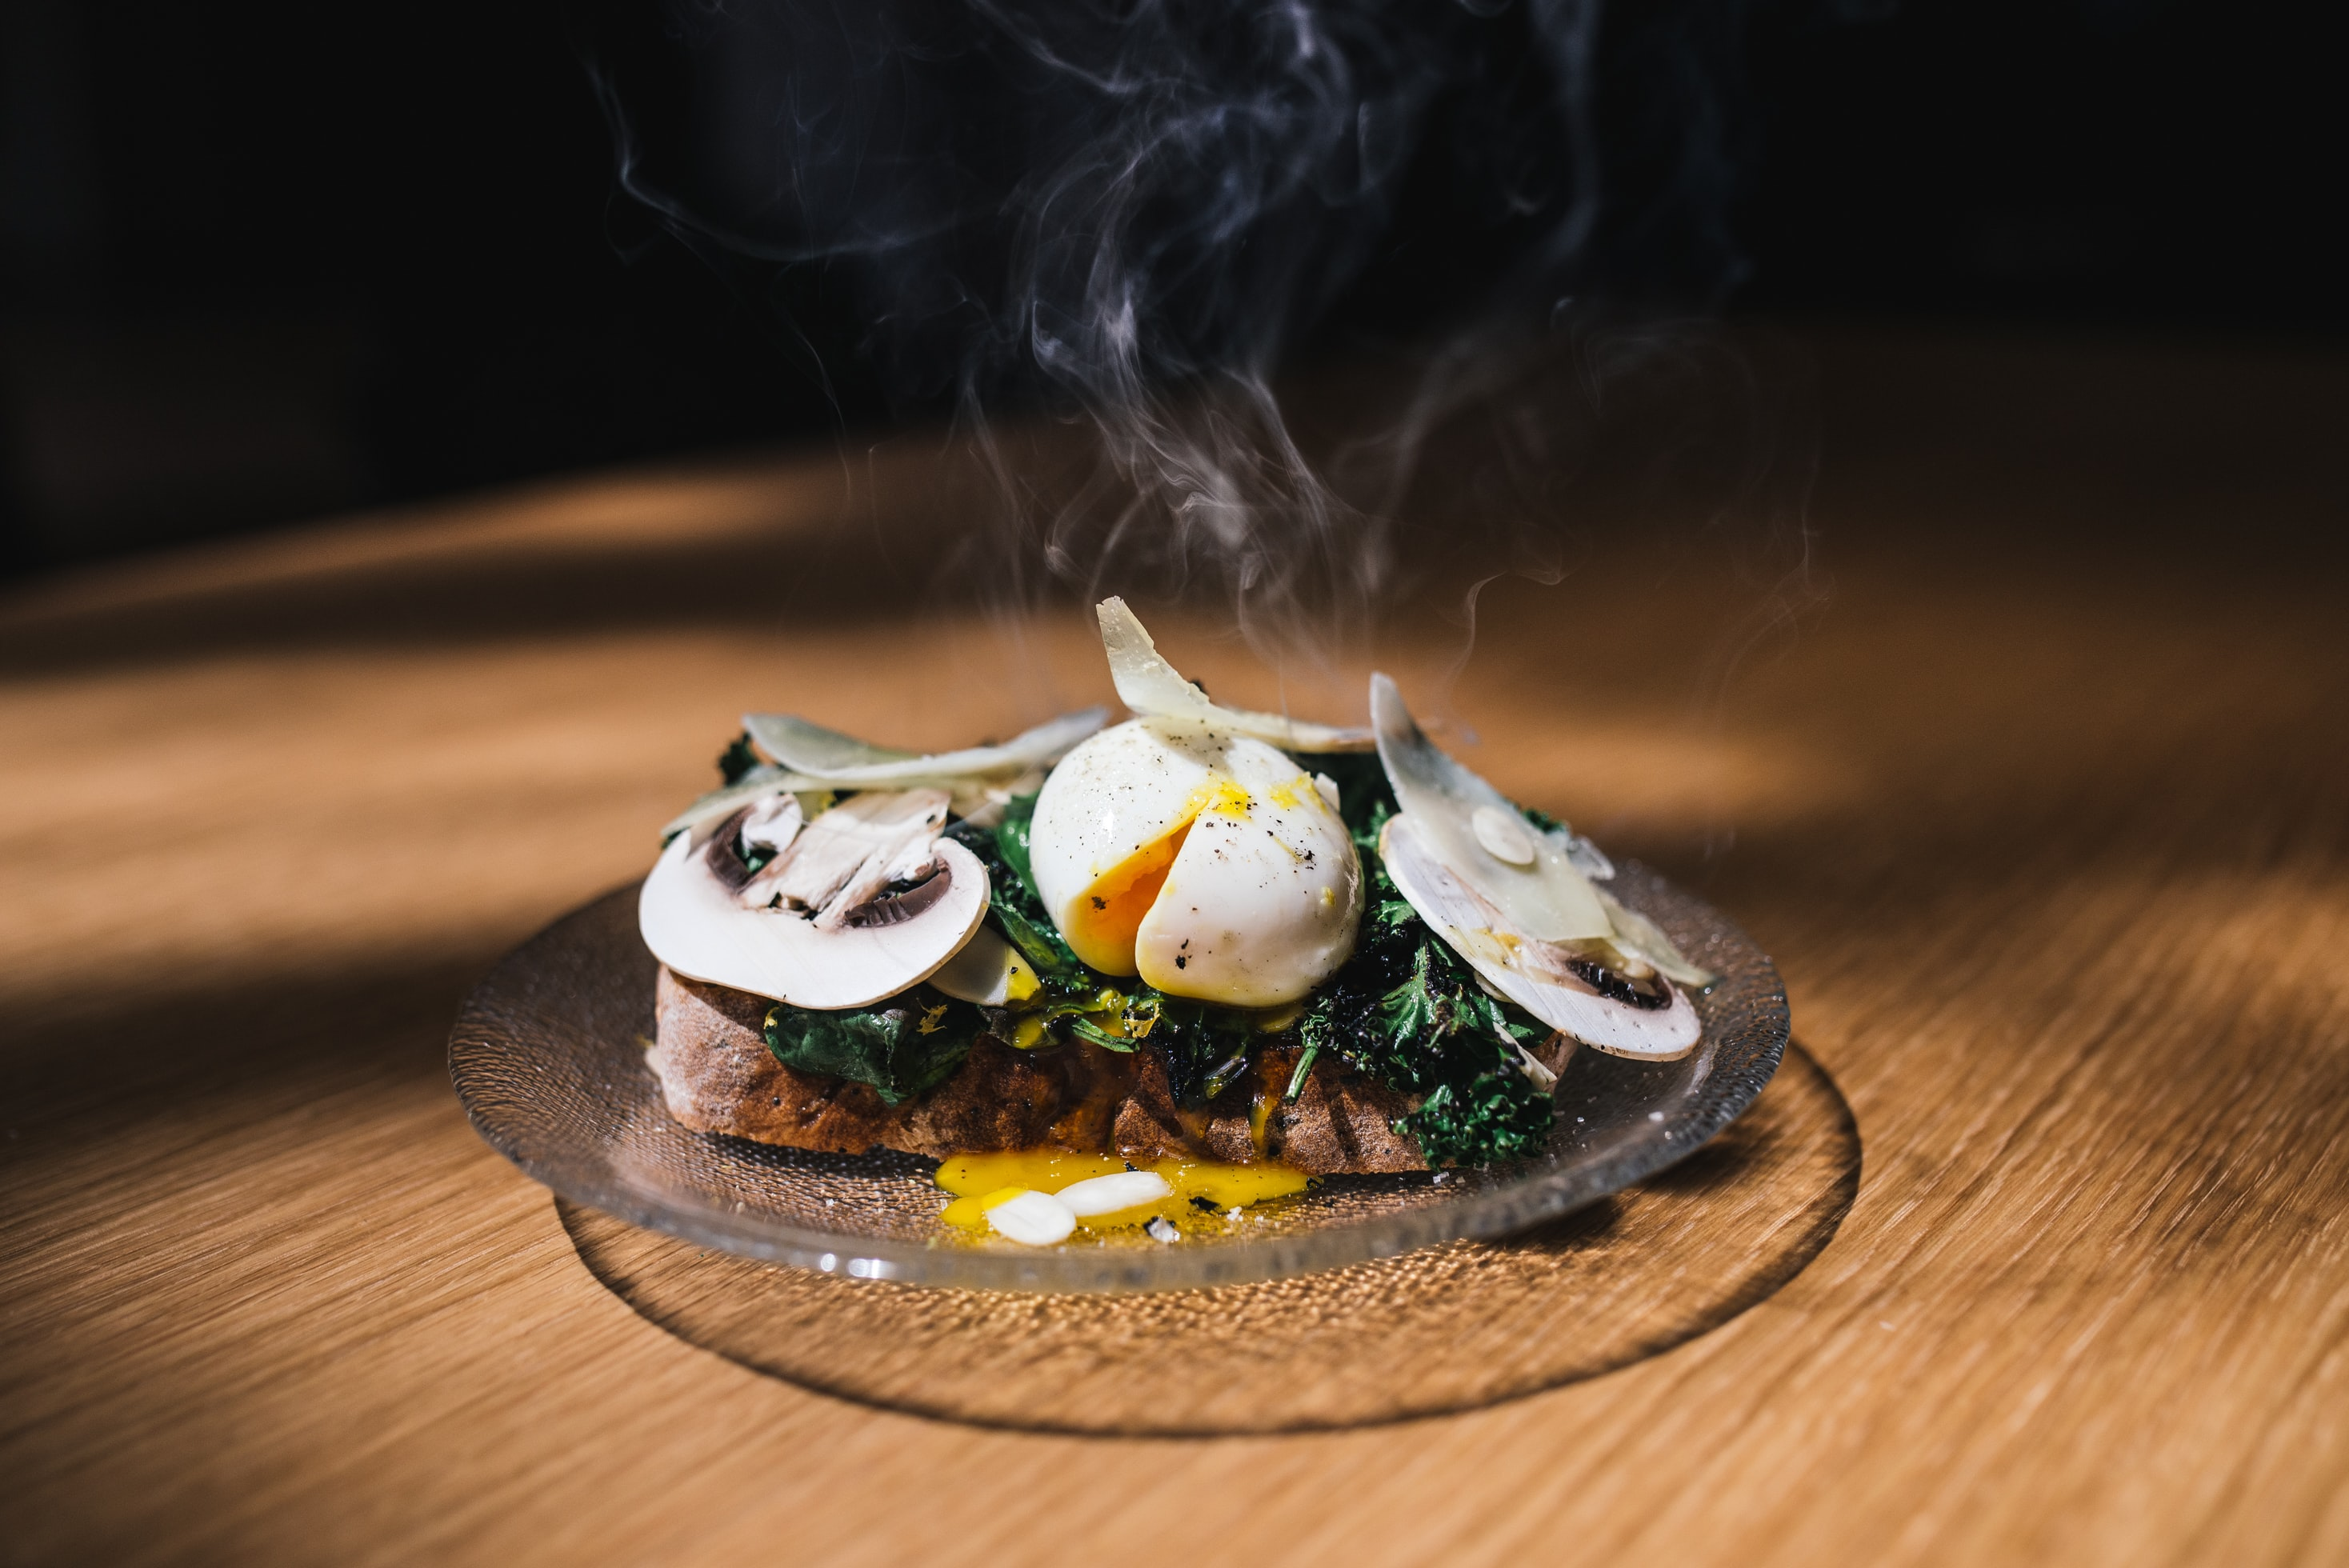 Gourmet cafe toast with a steaming poached egg, mushrooms, and greens